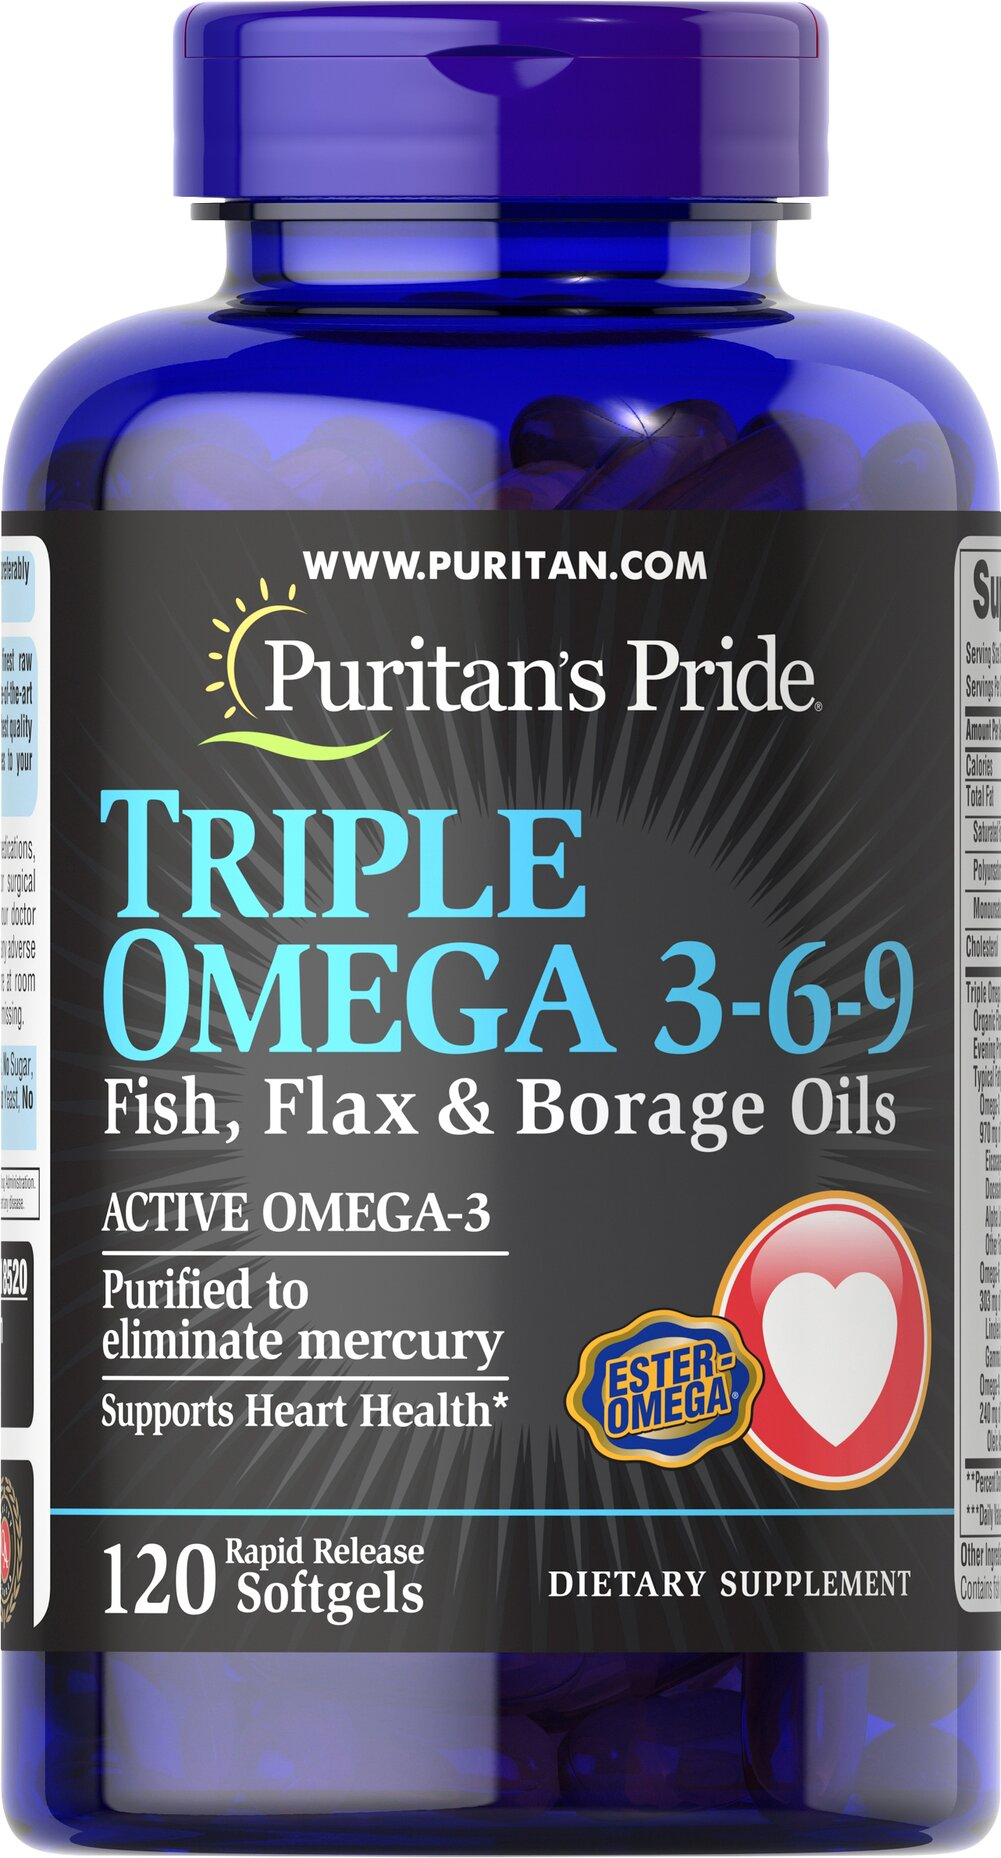 "Omega 3-6-9 with Evening Primrose Oil <p><b>Purified to Eliminate Mercury</b></p><p>Contains  Omega-3, Omega-6 and Omega-9</b> – the ""good"" fats important for cellular, heart and metabolic health.** </p>TRIPLE OMEGA 3-6-9 contains <i>a proprietary blend of essential oils, including Flaxseed Oil, Fish Oil, Evening Primrose Oil and Borage Oil, and is a good source of Vitamin E.</i></p> 120 Softgels  $15.99"